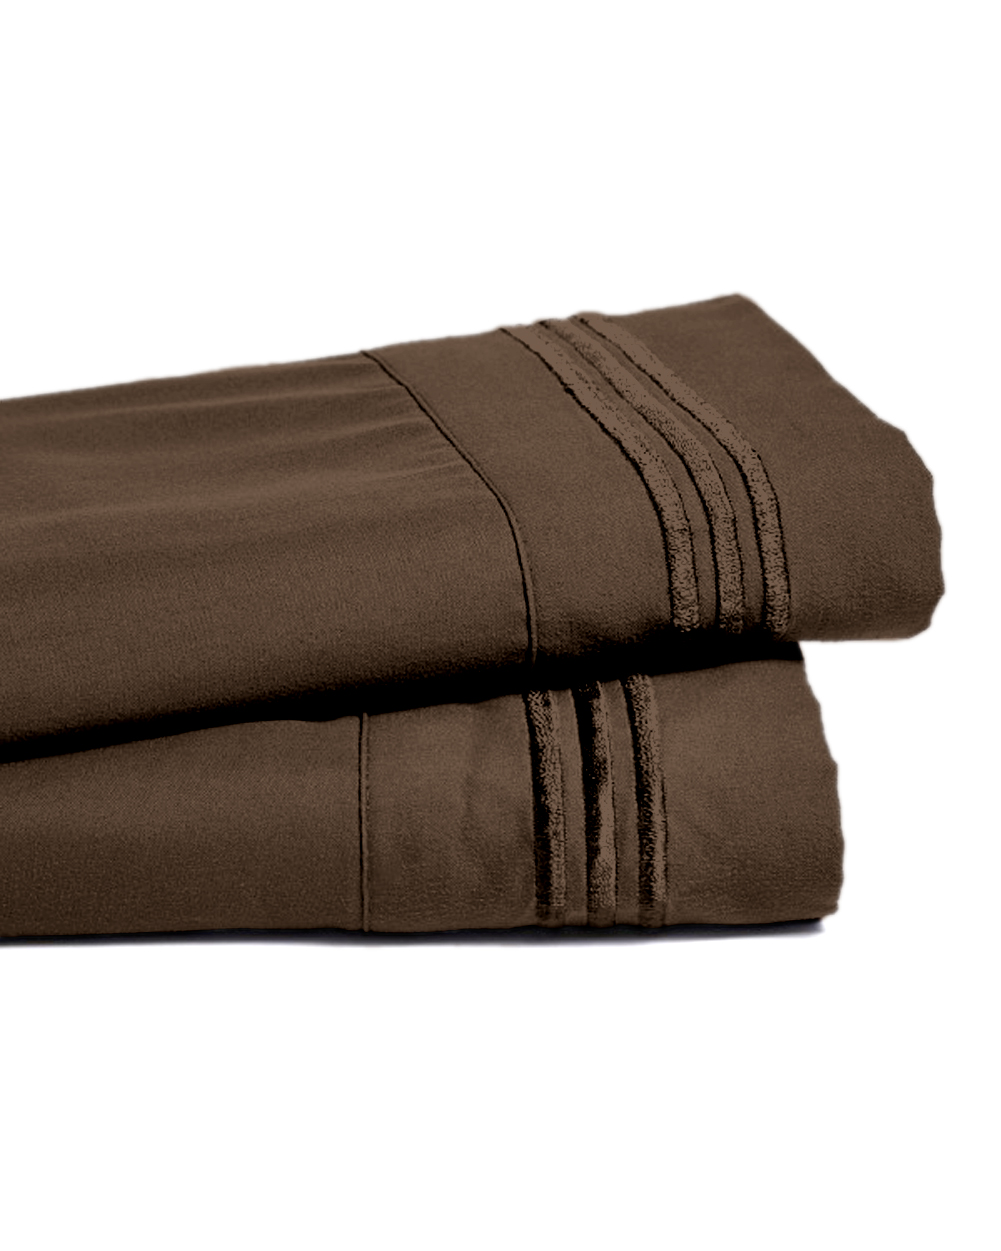 Deep Pocket Bamboo Bed Sheet - Luxury 2200 Embroidered Wrinkle, Fade and Stain Resistant Sheets - Chocolate Full Size